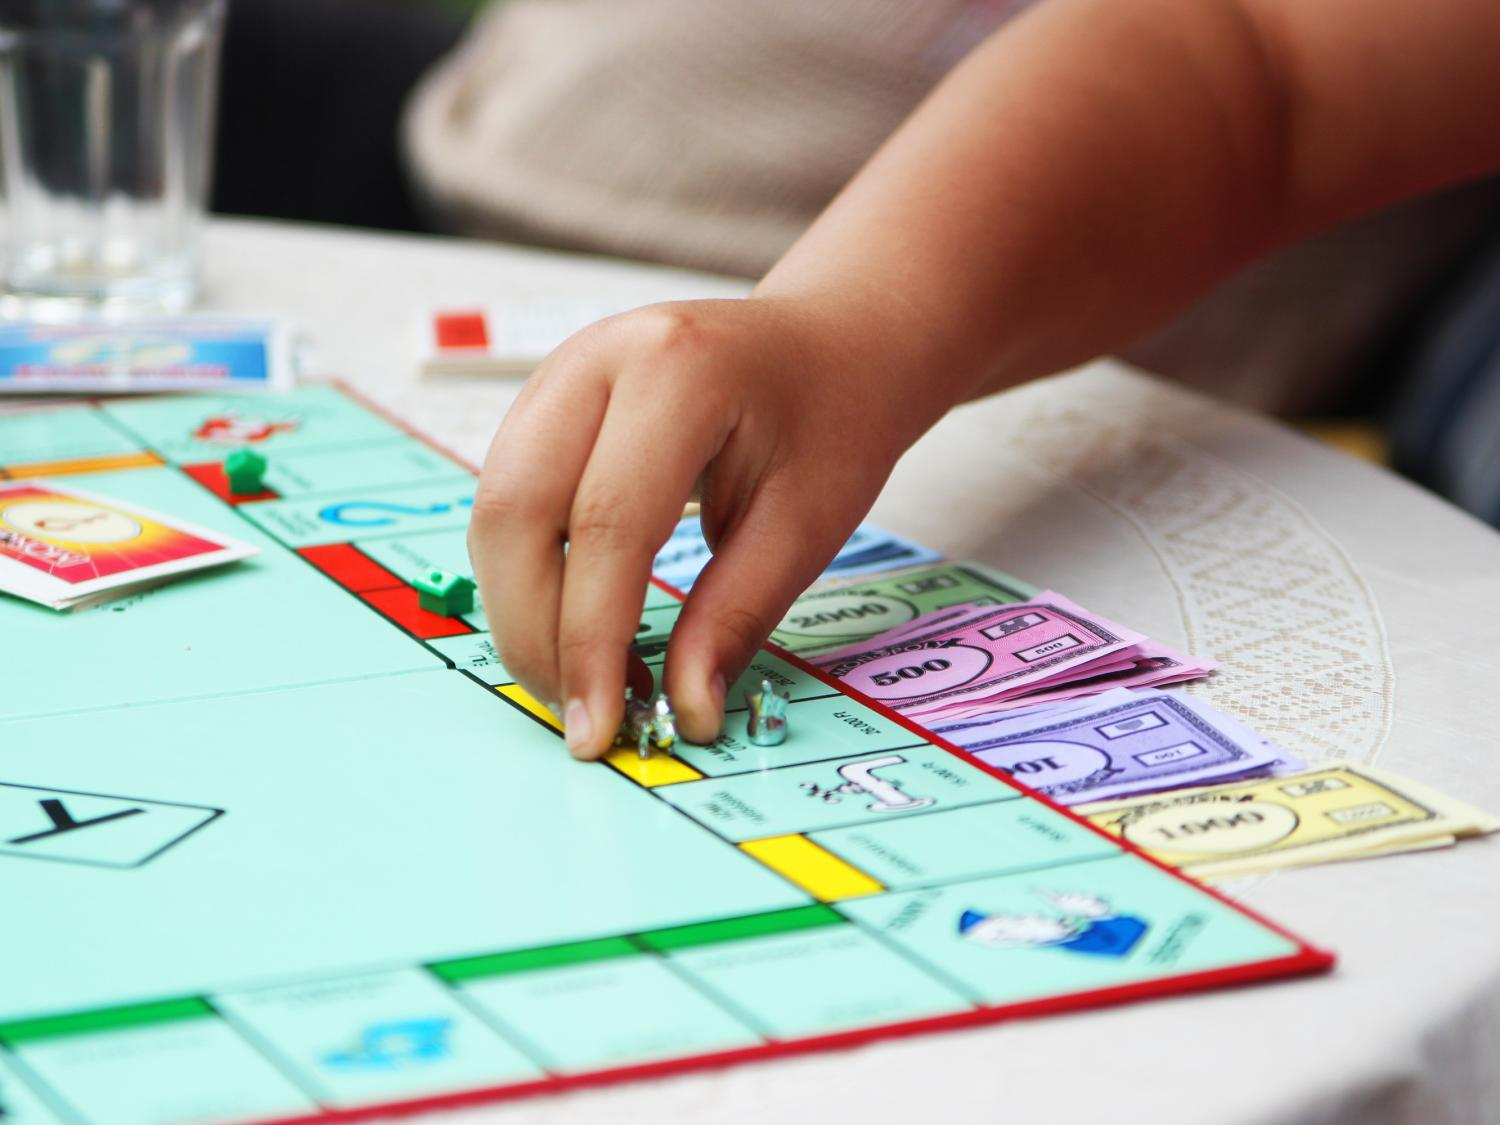 According to Eric Robbins, lecturer in finance, classic board games like Monopoly are still one of the best gift ideas for children.